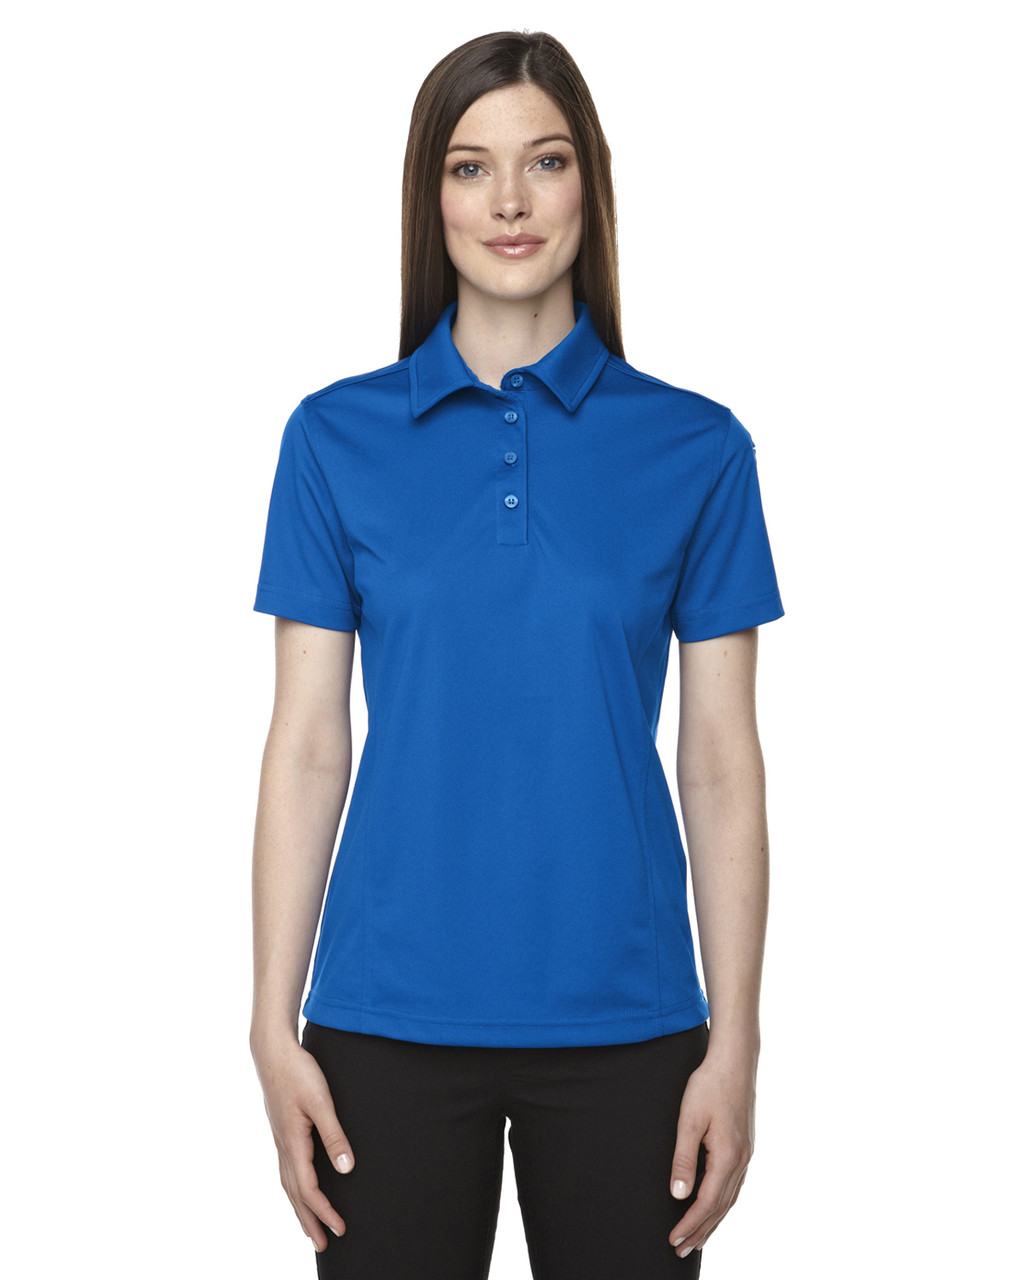 True Royal - 75114 Ash City - Extreme Eperformance Ladies Snag Protection Plus Polo Shirt